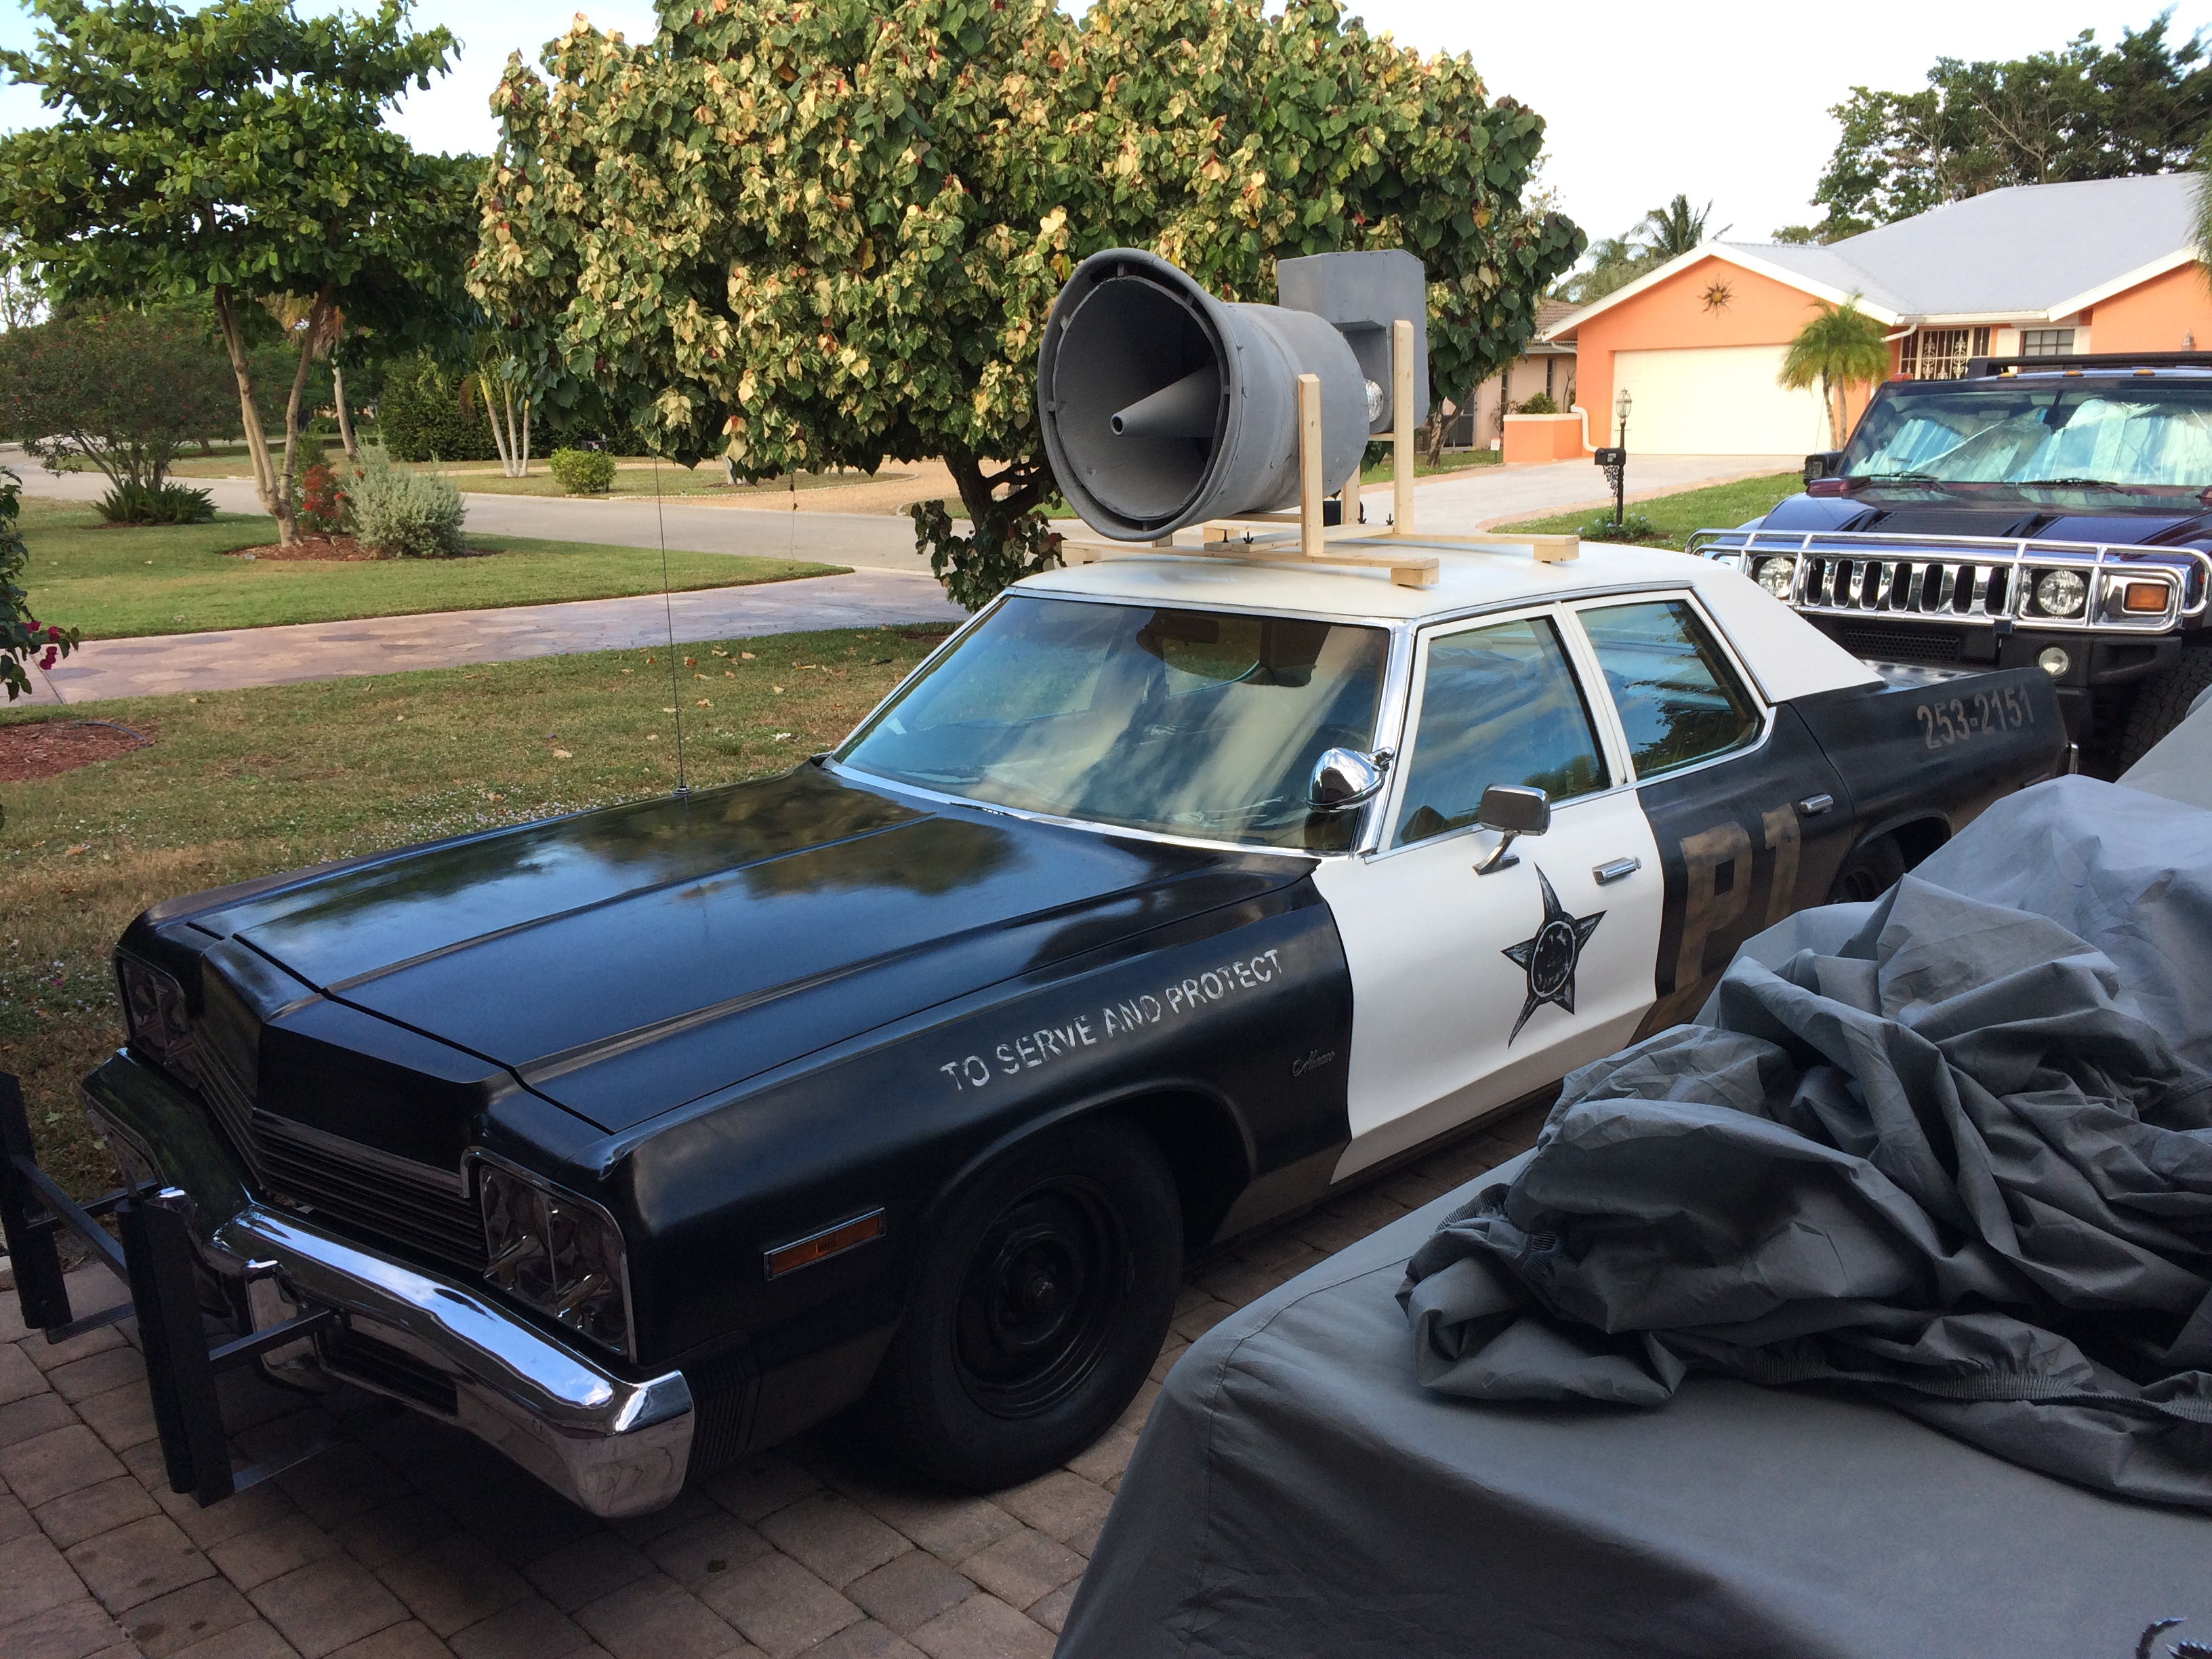 Joe's authentic 1974 Dodge Monaco Blues Brothers movie car with roof speaker.